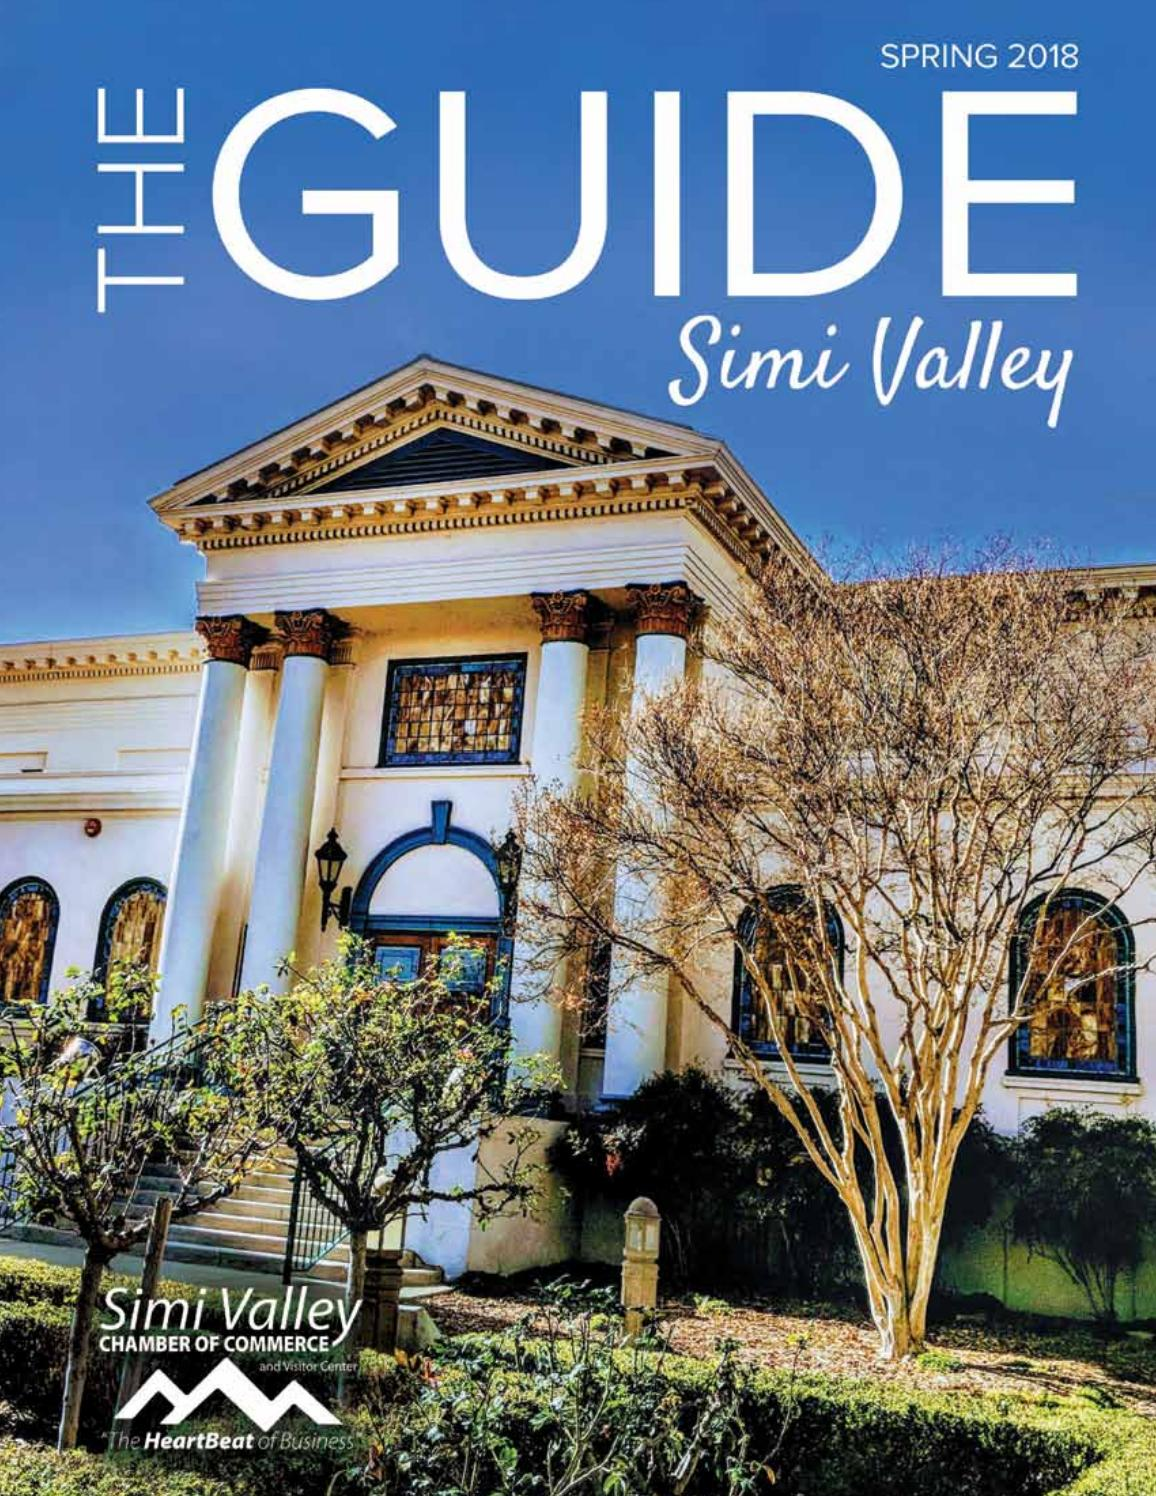 Simi Valley The Guide by svcc2468 - issuu